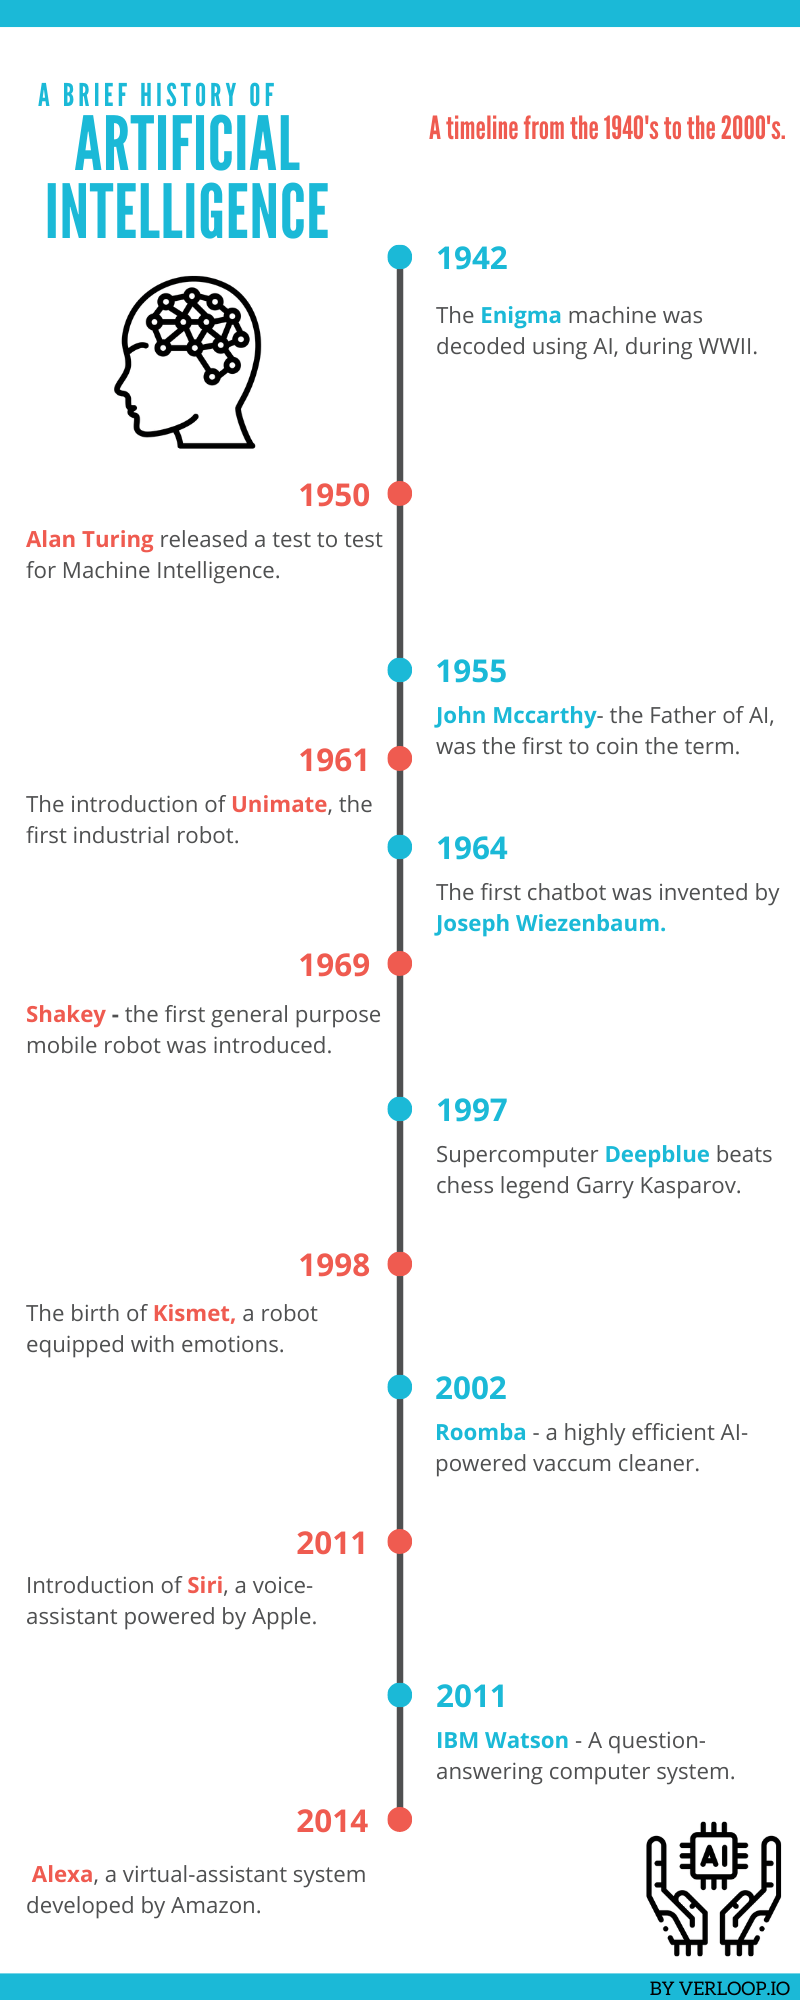 An infographic showing the timeline of artificial intelligence